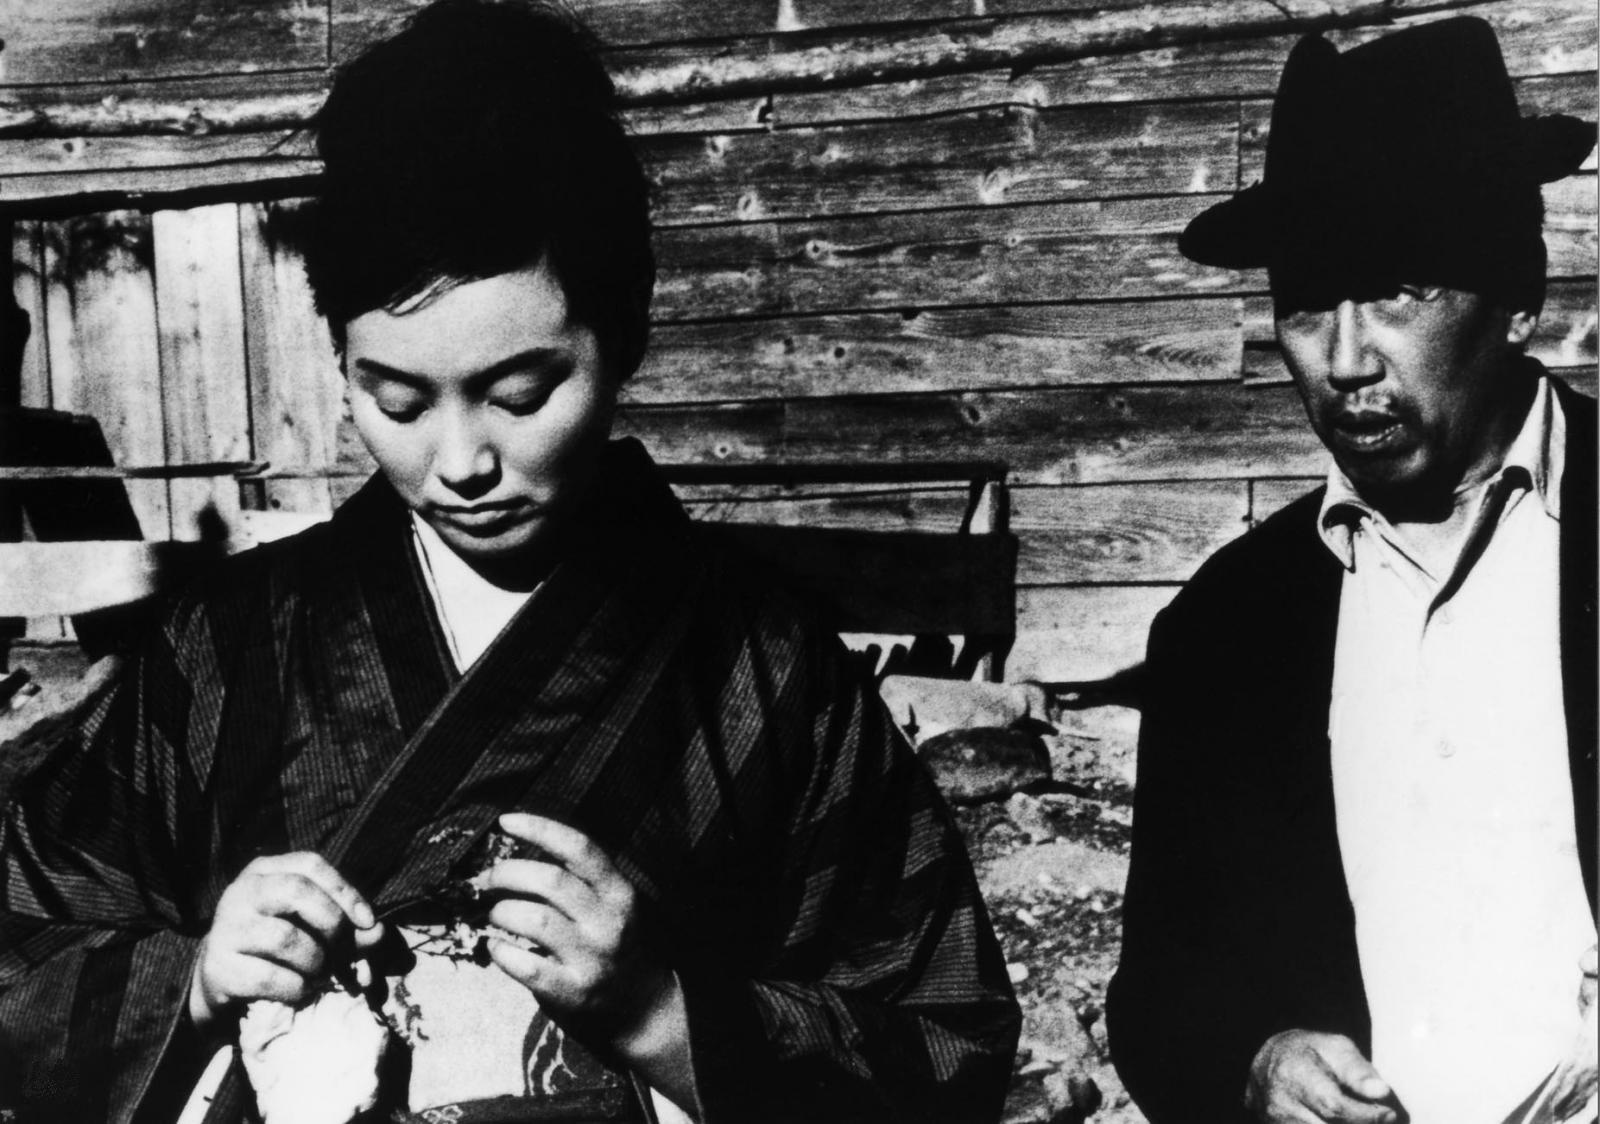 brief history of japanese cinema film As mentioned above, japanese cinema was thought to play a central role in the decline of traditional japanese culture, and aided in a subgenre of the kokusaku film was the rekishi eiga, or historical epics set in the tokugawa period (davis, 1996) these films were beloved for their tireless promotion.